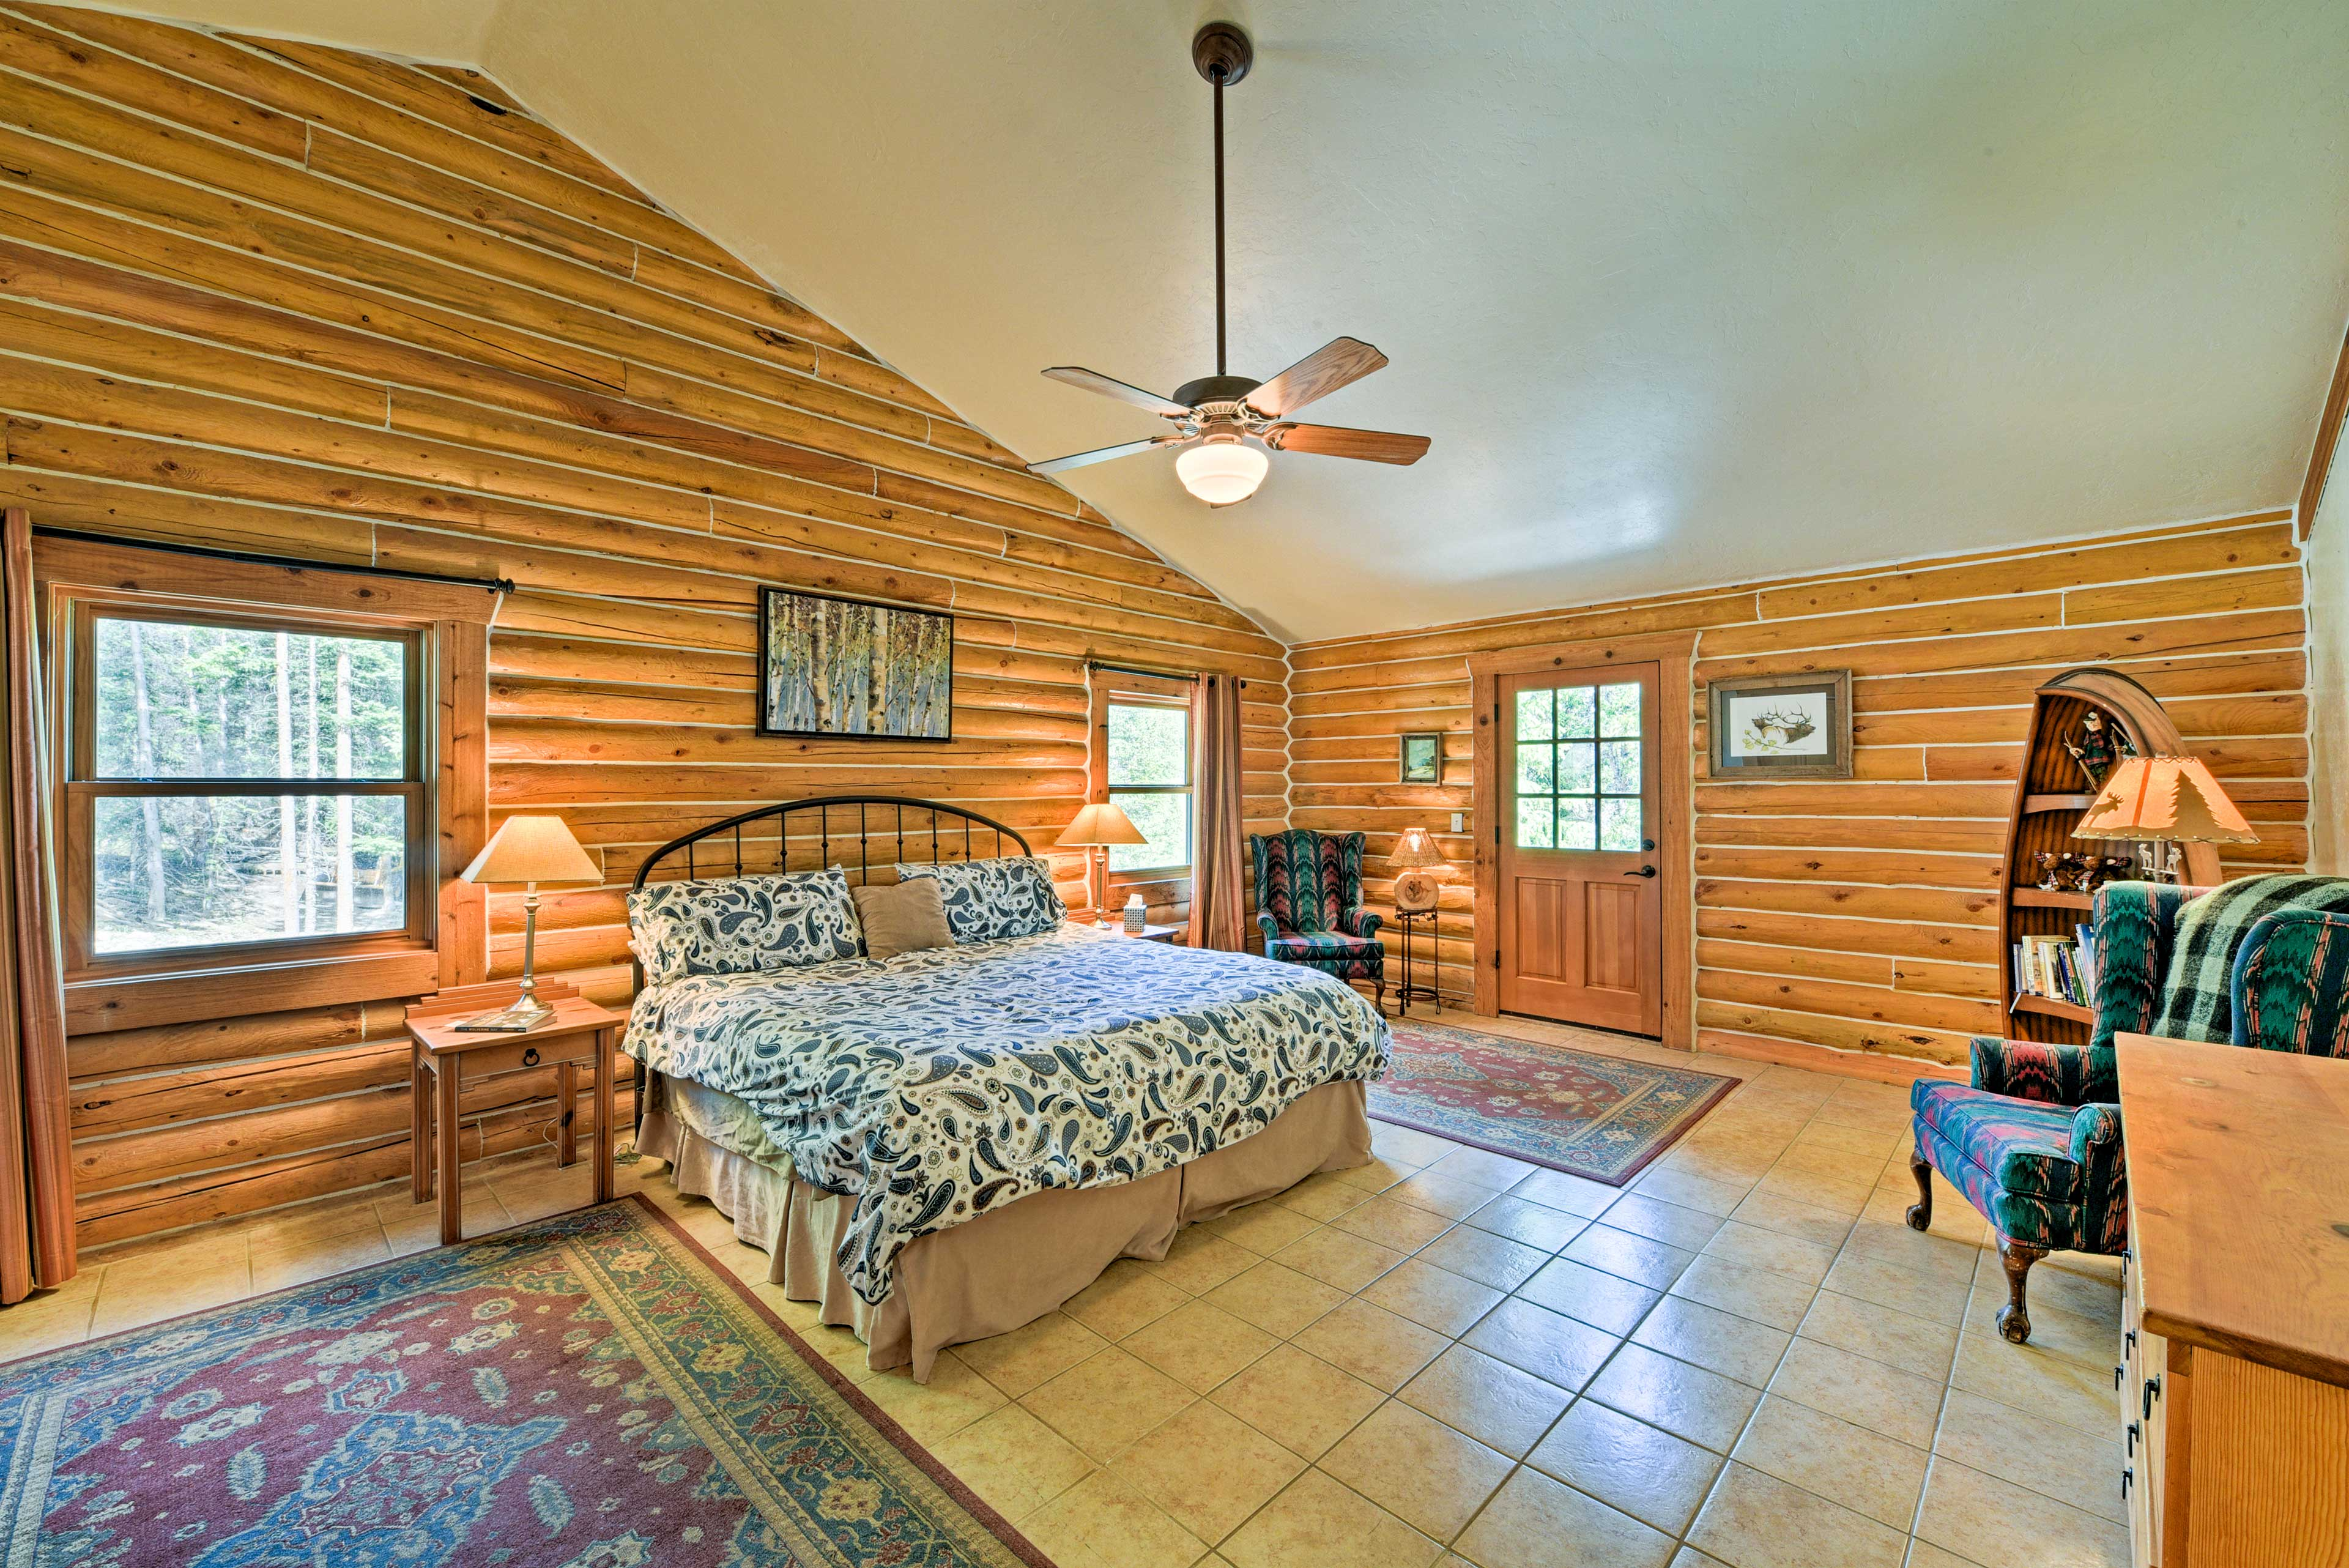 The spacious master bedroom features a king-sized bed.